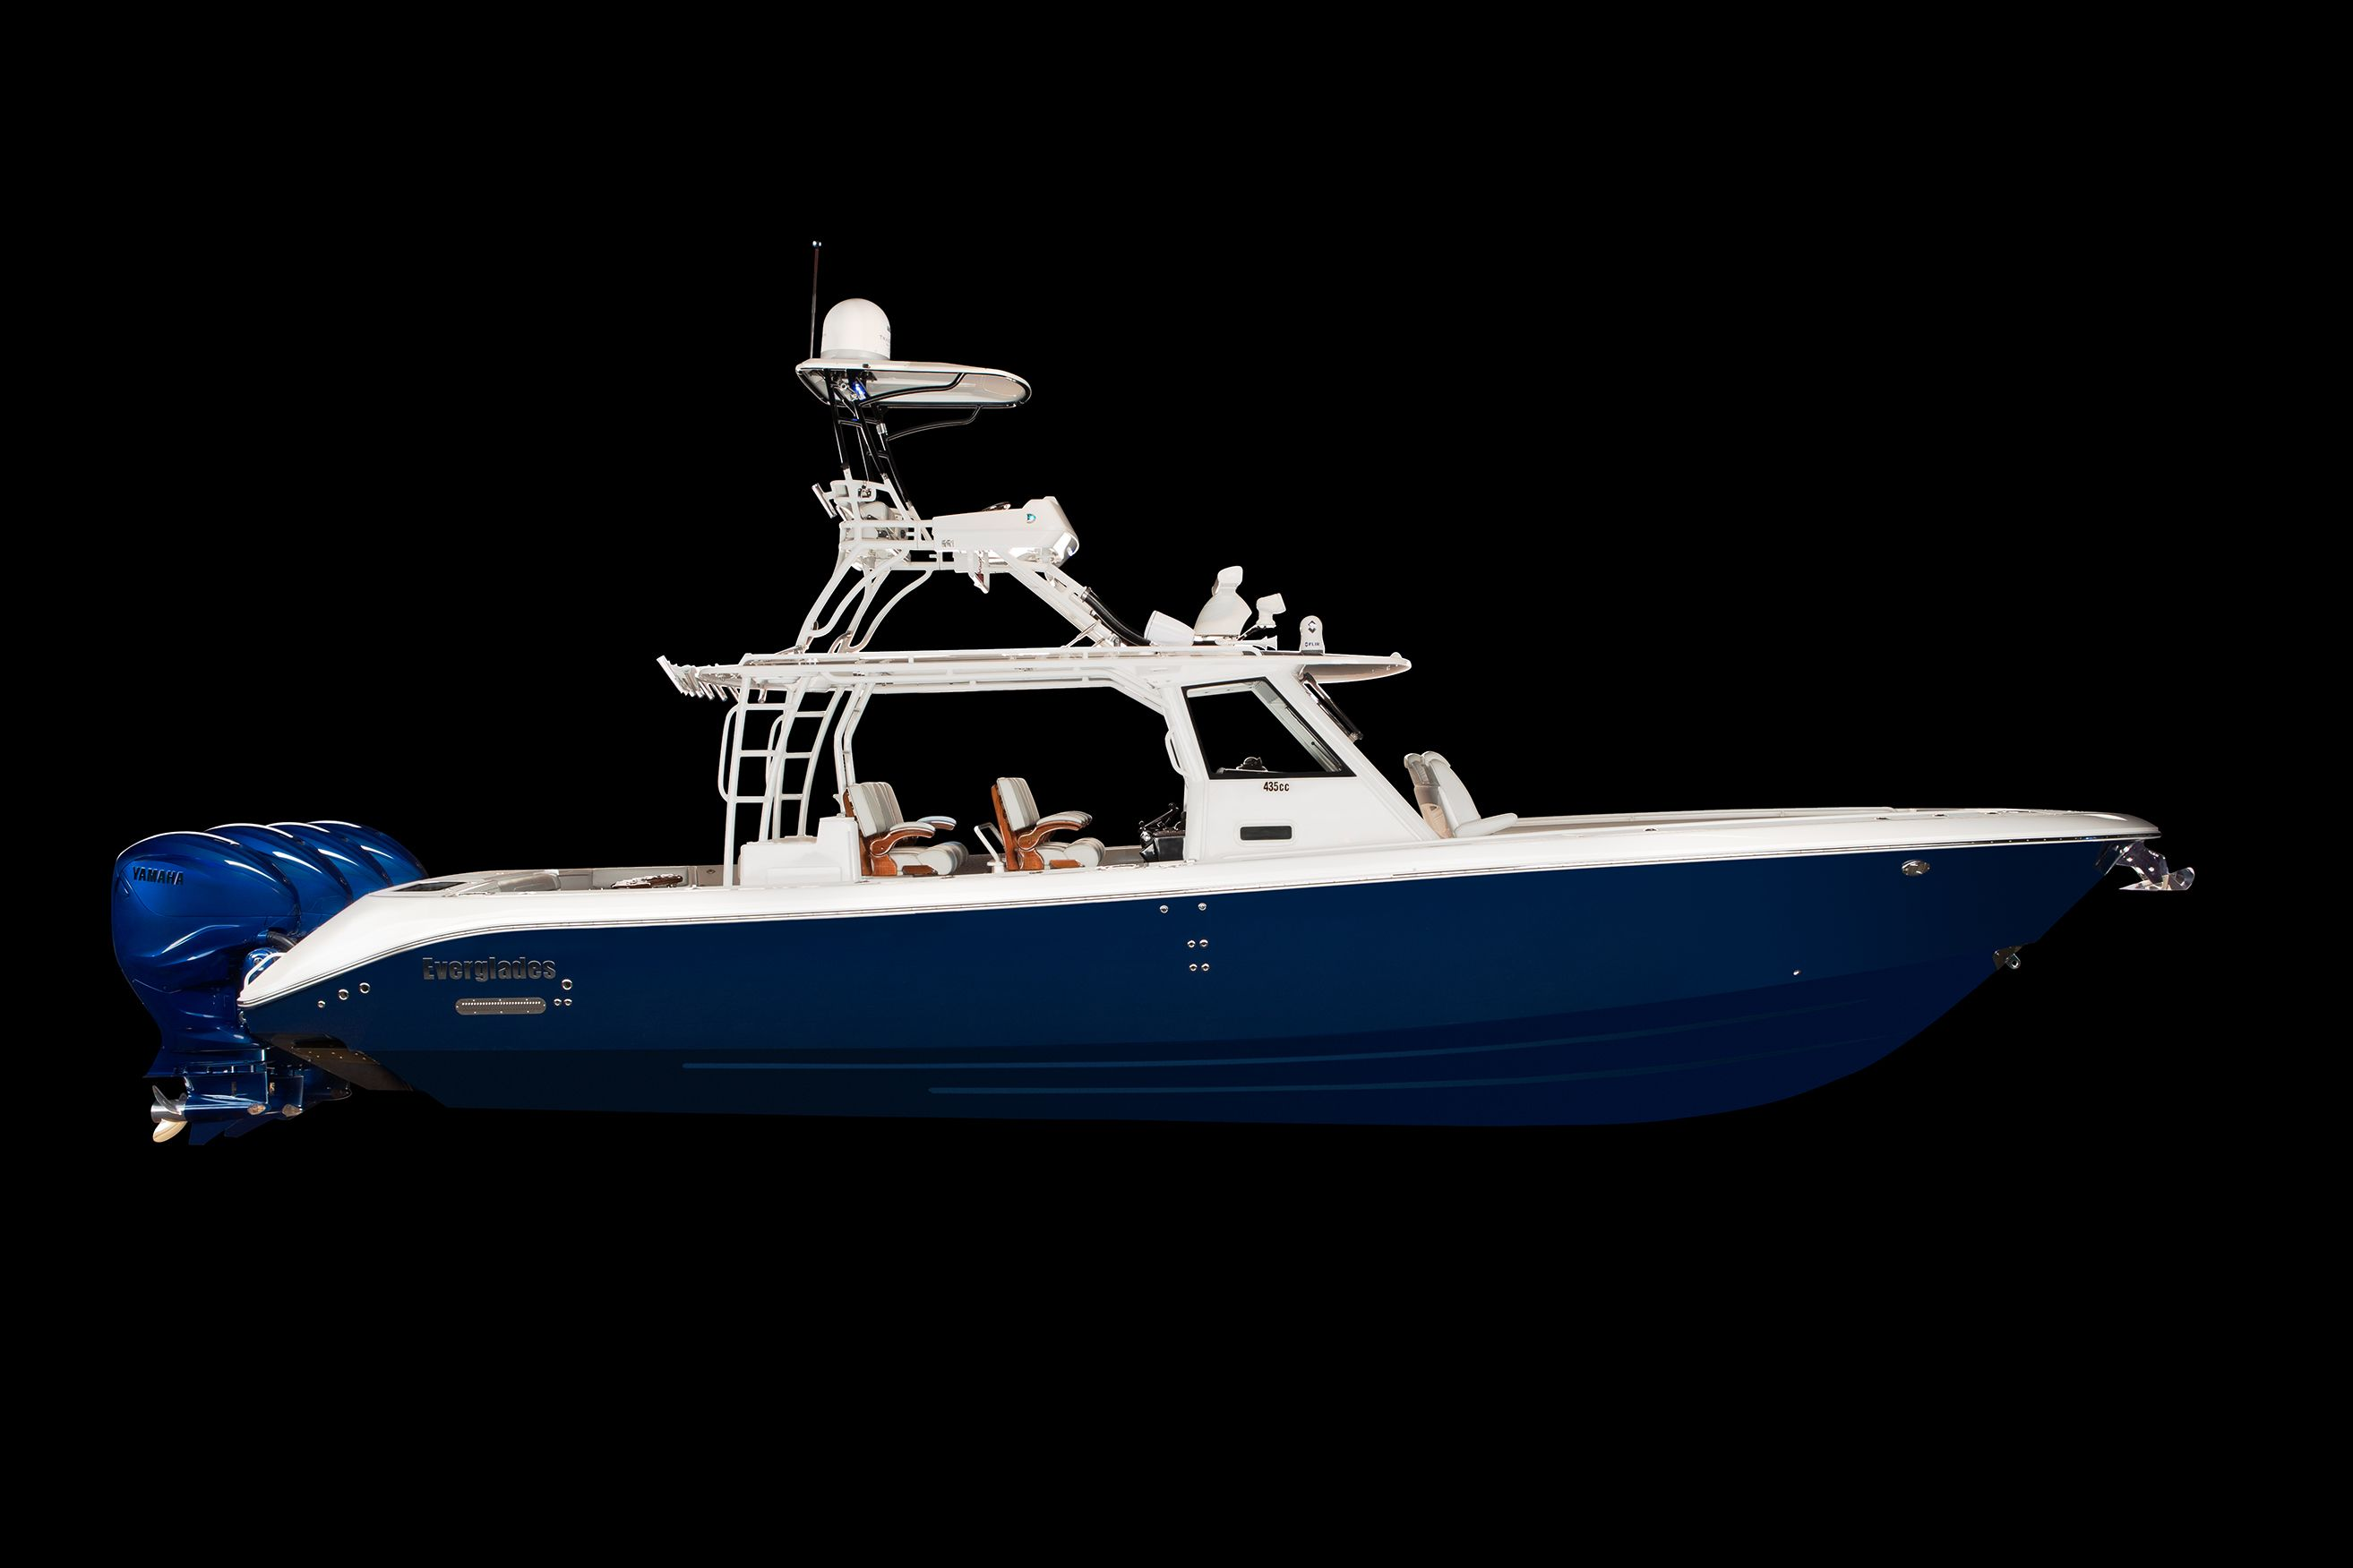 Client: Everglades Boats